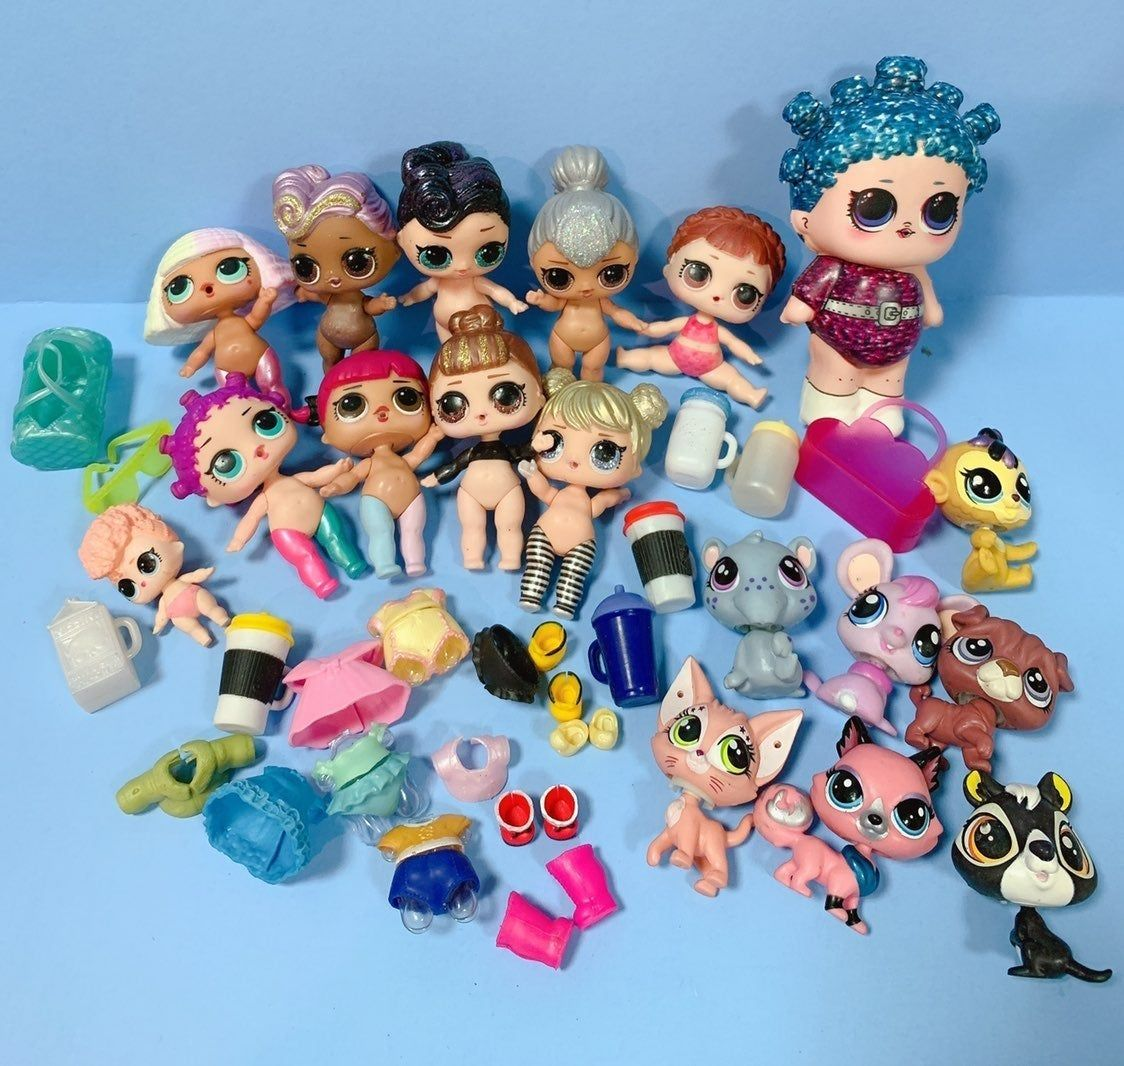 L.o.l LOL Surprise DOLL BAMBOLA Lil Sisters Series 4 Lil Goodie